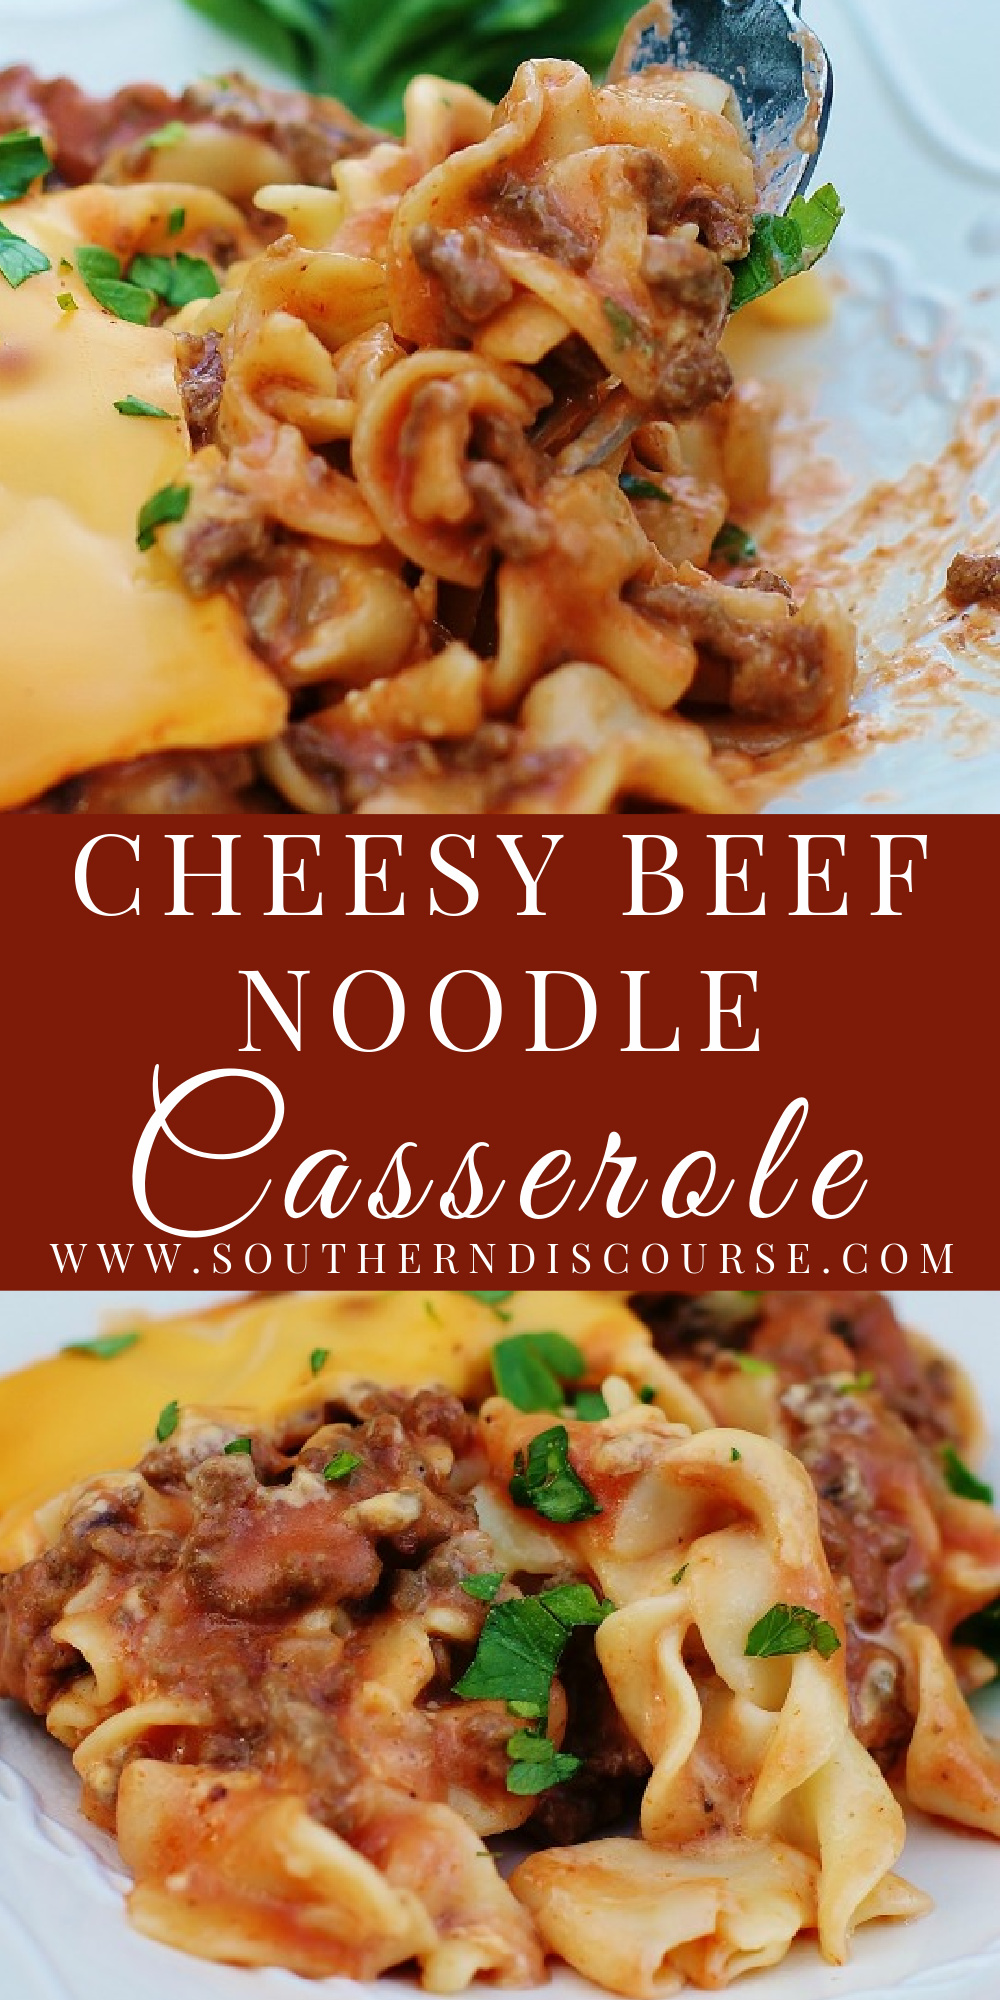 All I do know is that the layers of seasoned beef, loads of cheese and egg noodles all covered in a creamy tomato mushroom sauce make this Cheesy Beef Noodle Casserole a winner every single time it hits the table.